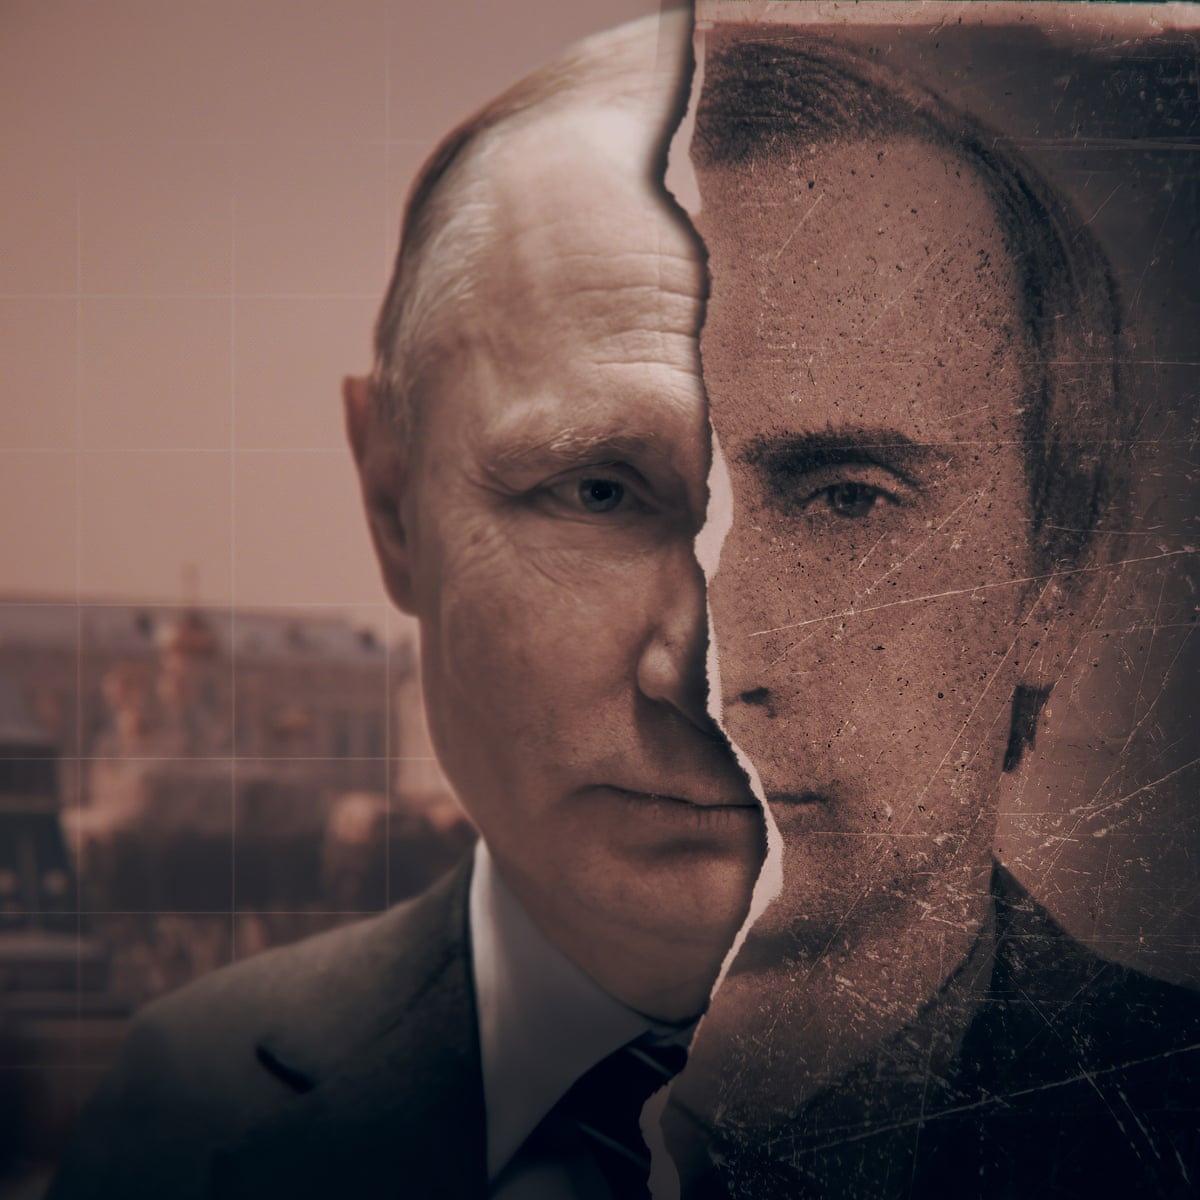 Tv Tonight A Deep Dive Into Vladimir Putin The Man And The Myth Television The Guardian